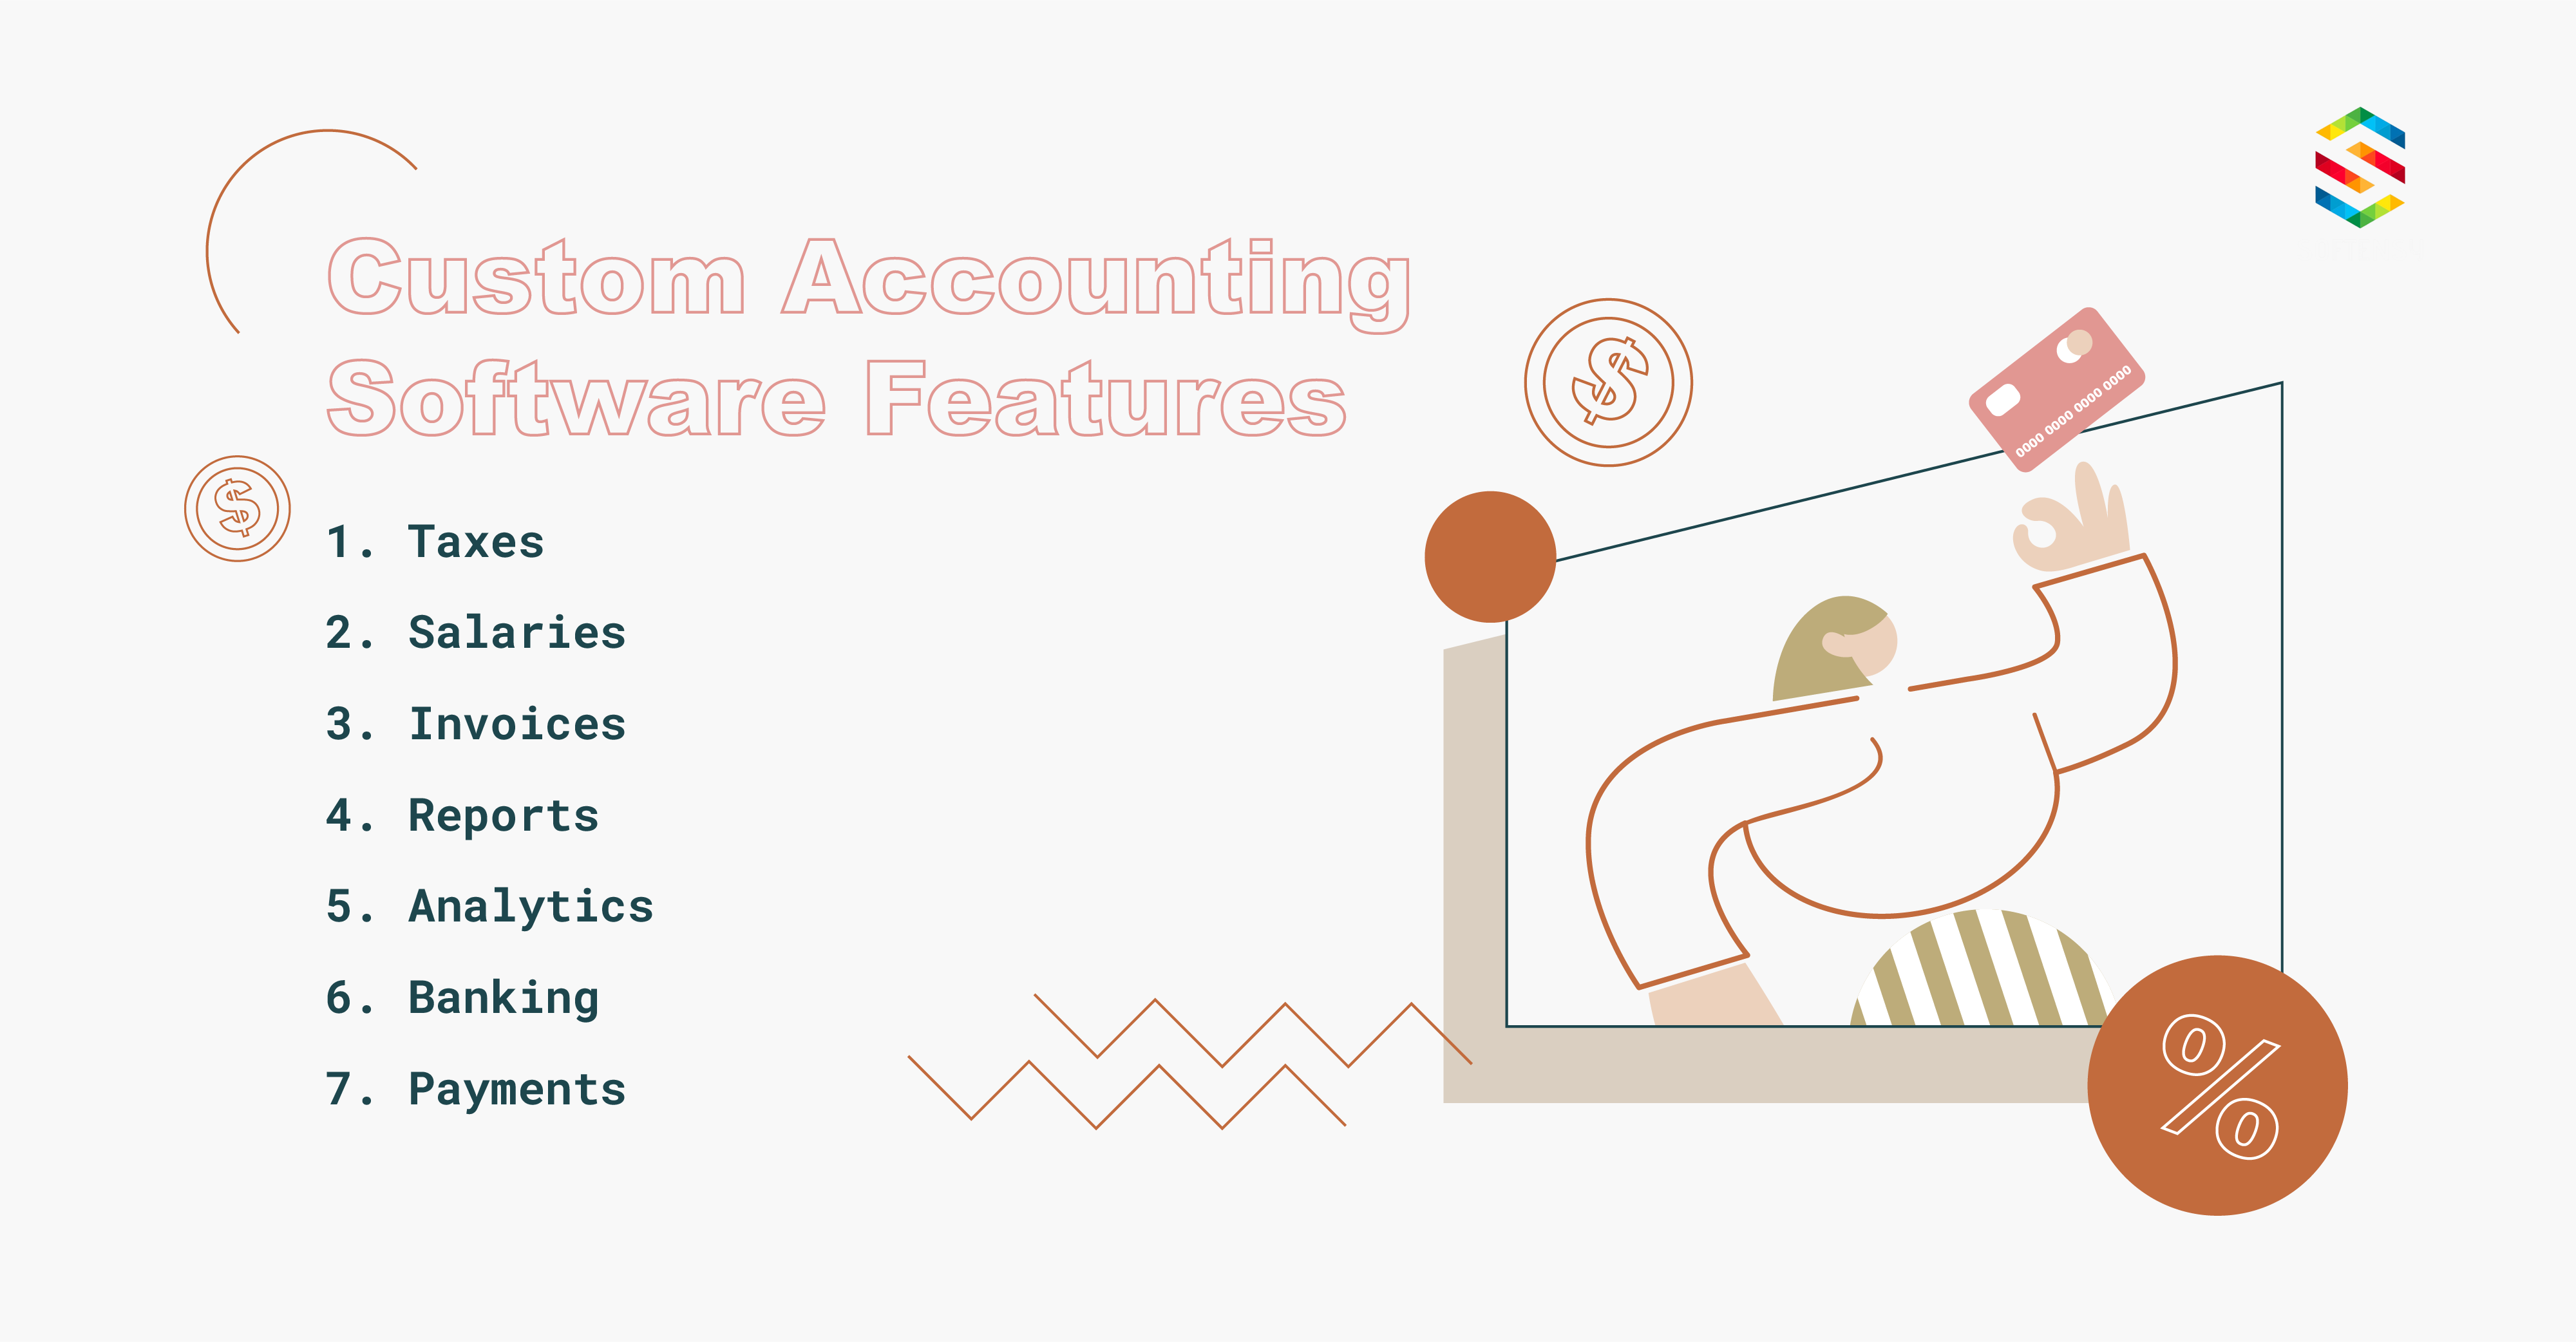 Accounting software features